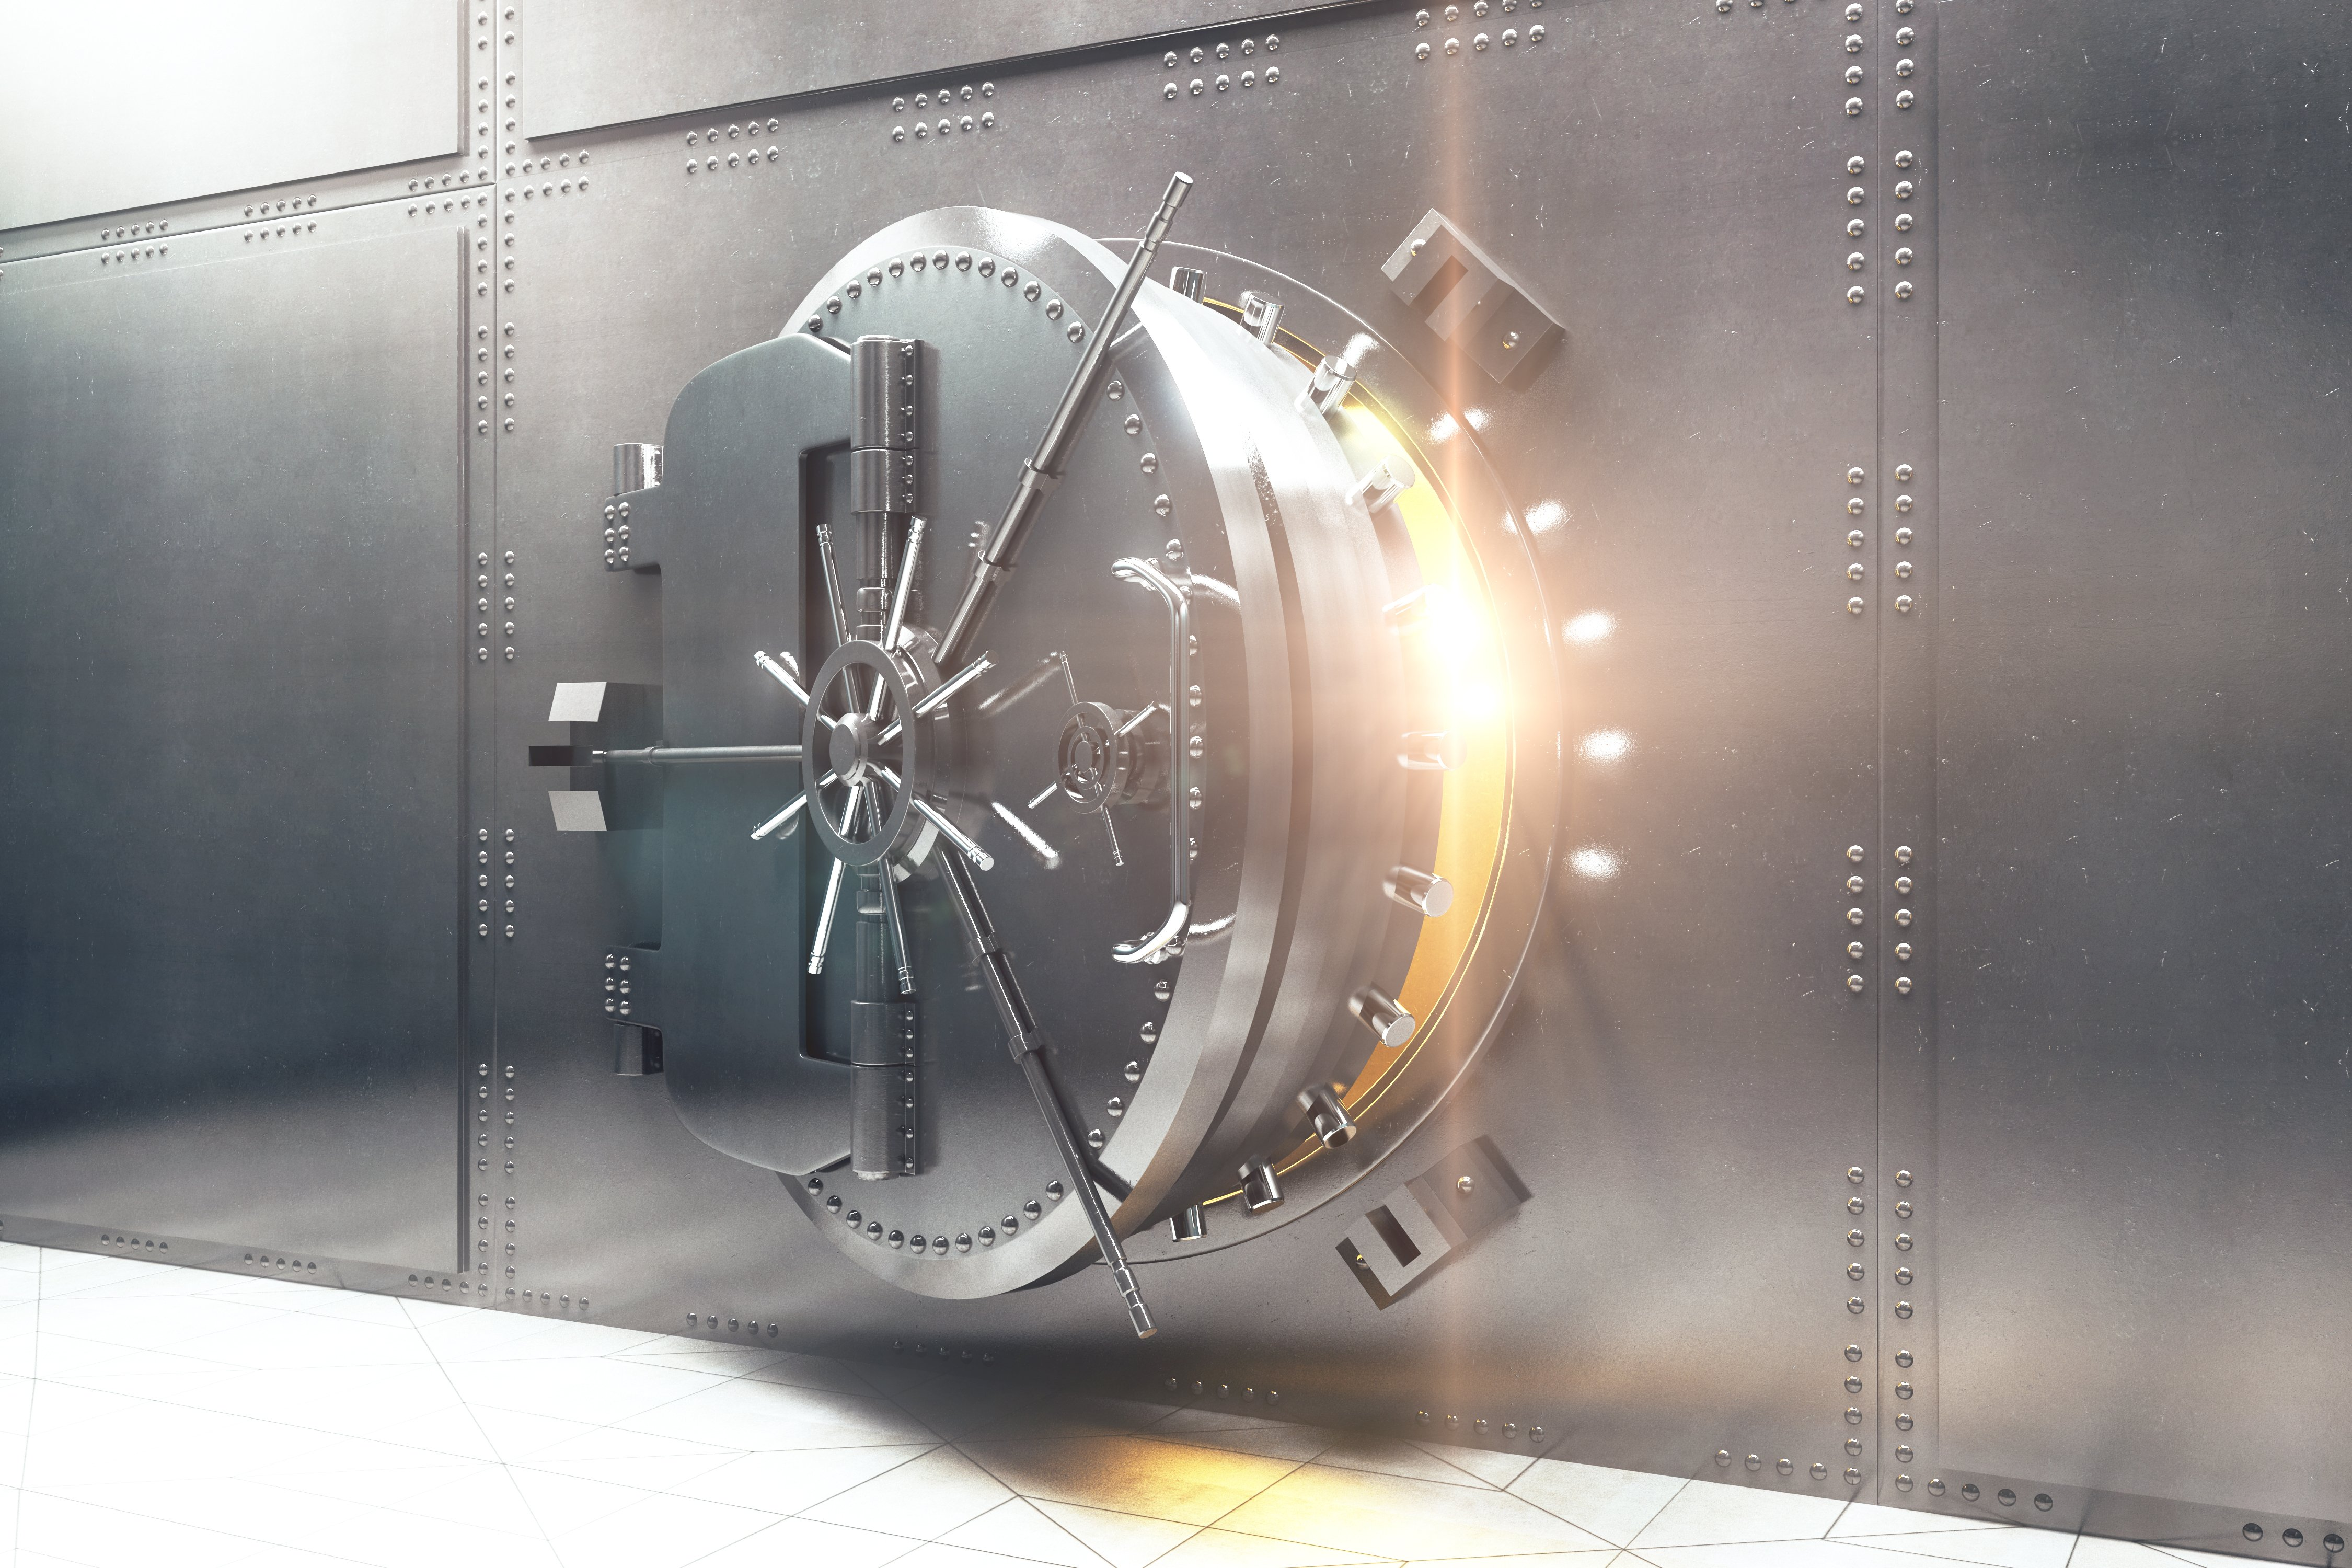 Cold storage cold storage cryptocurrency